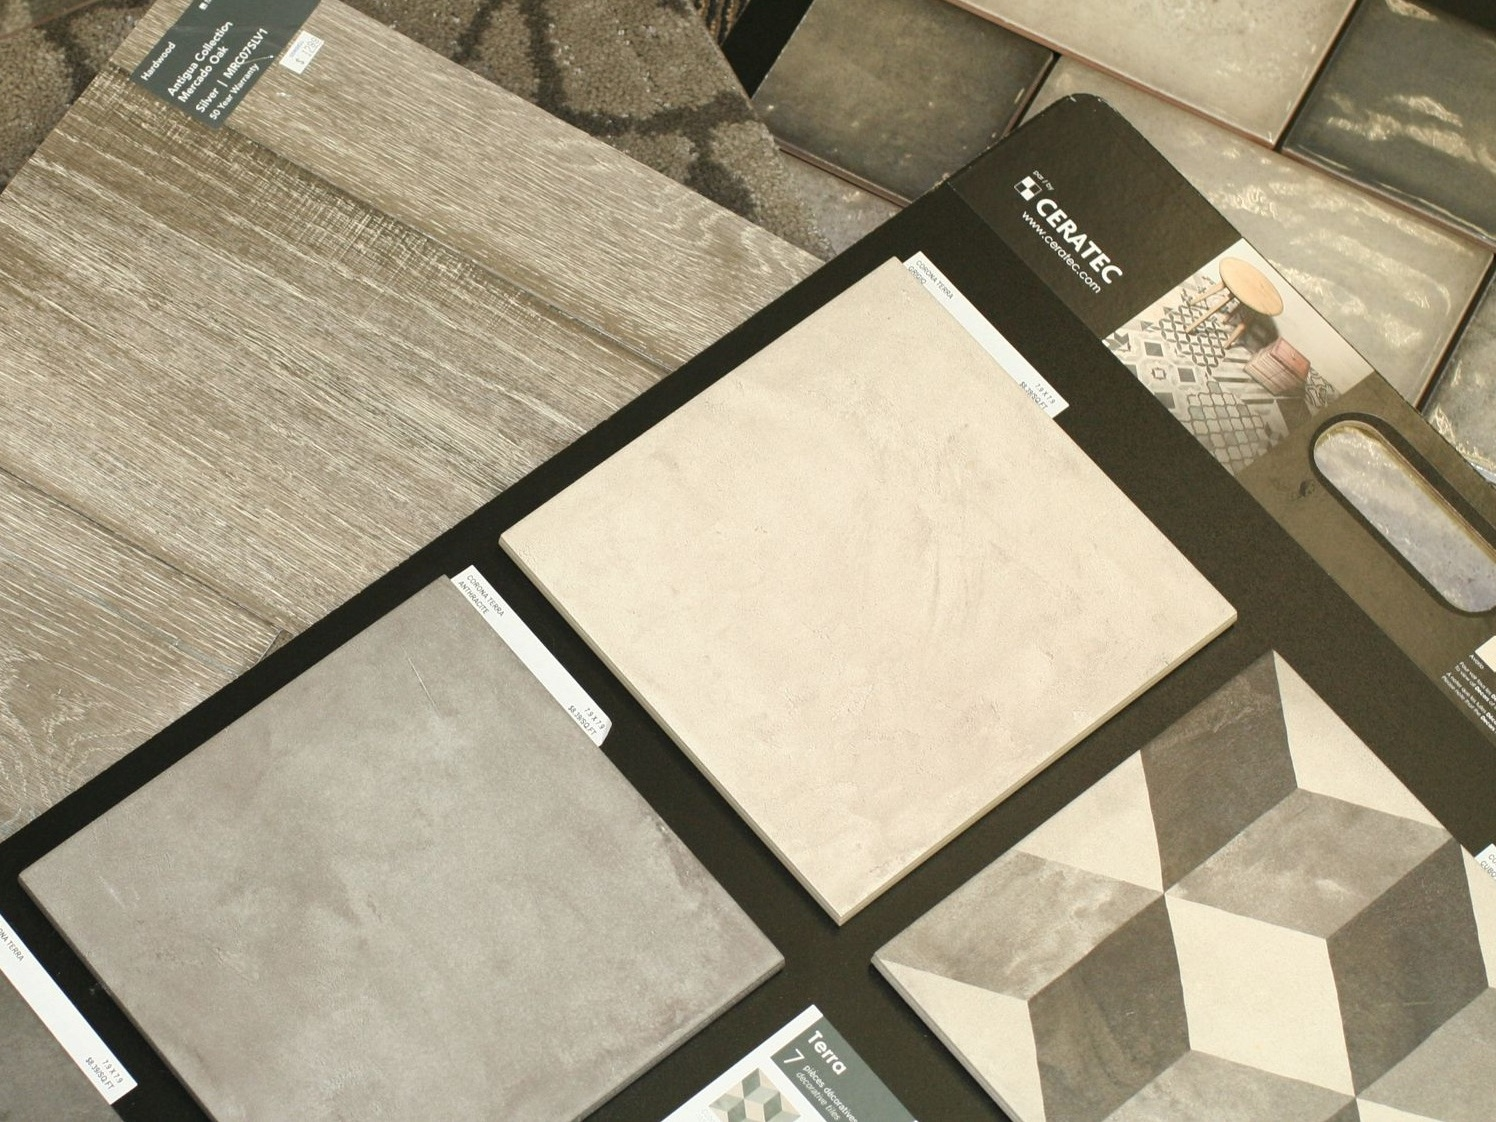 Ceramic Tile - Porcelain, Slate, Natural Stone, Glass, GraniteAll sizes from Mosaics to 24